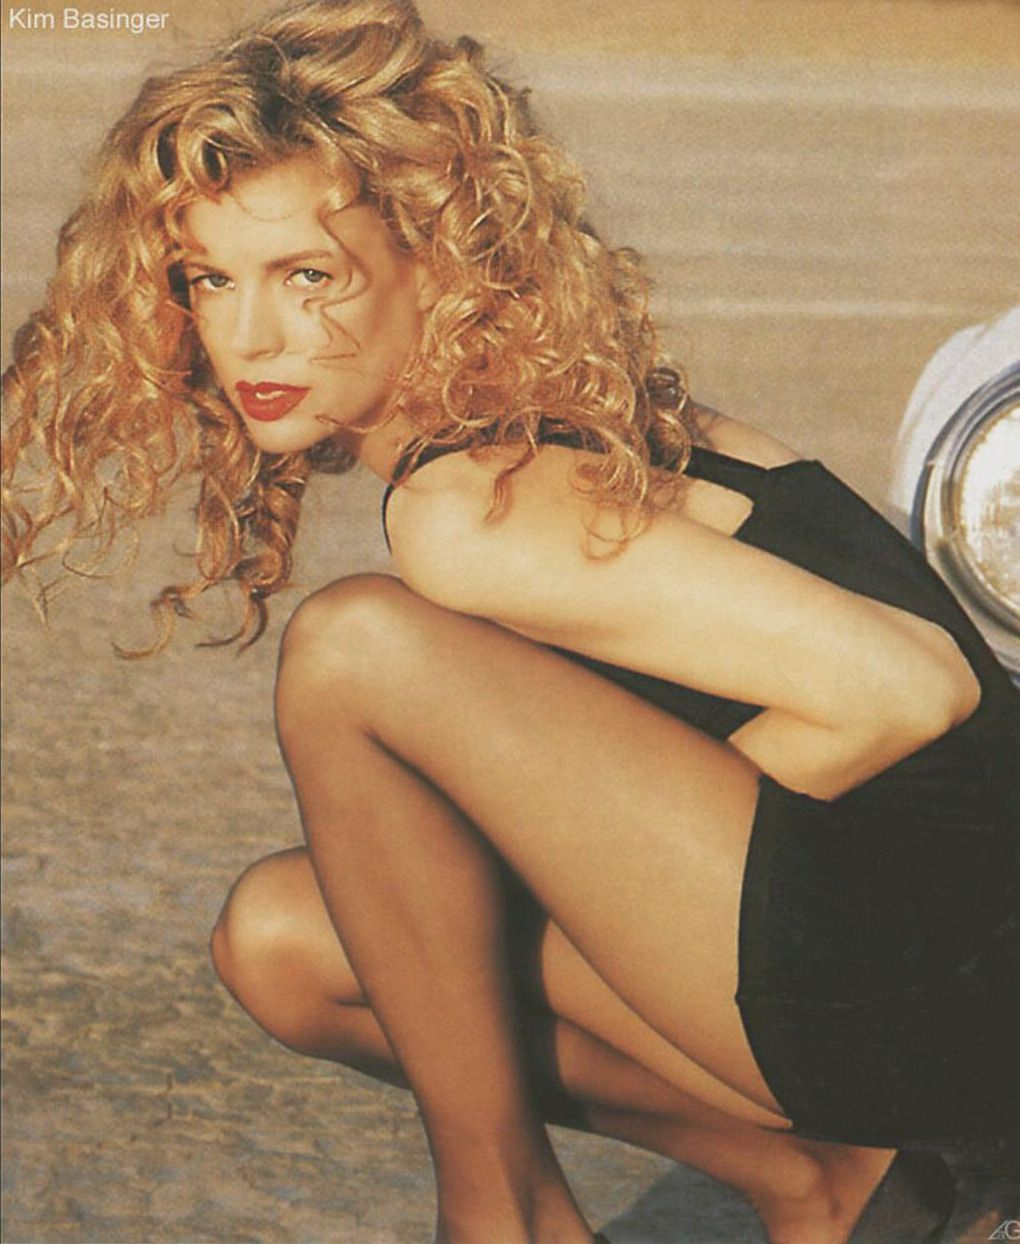 Kim Basinger Nude Wearing Nylons And Heels